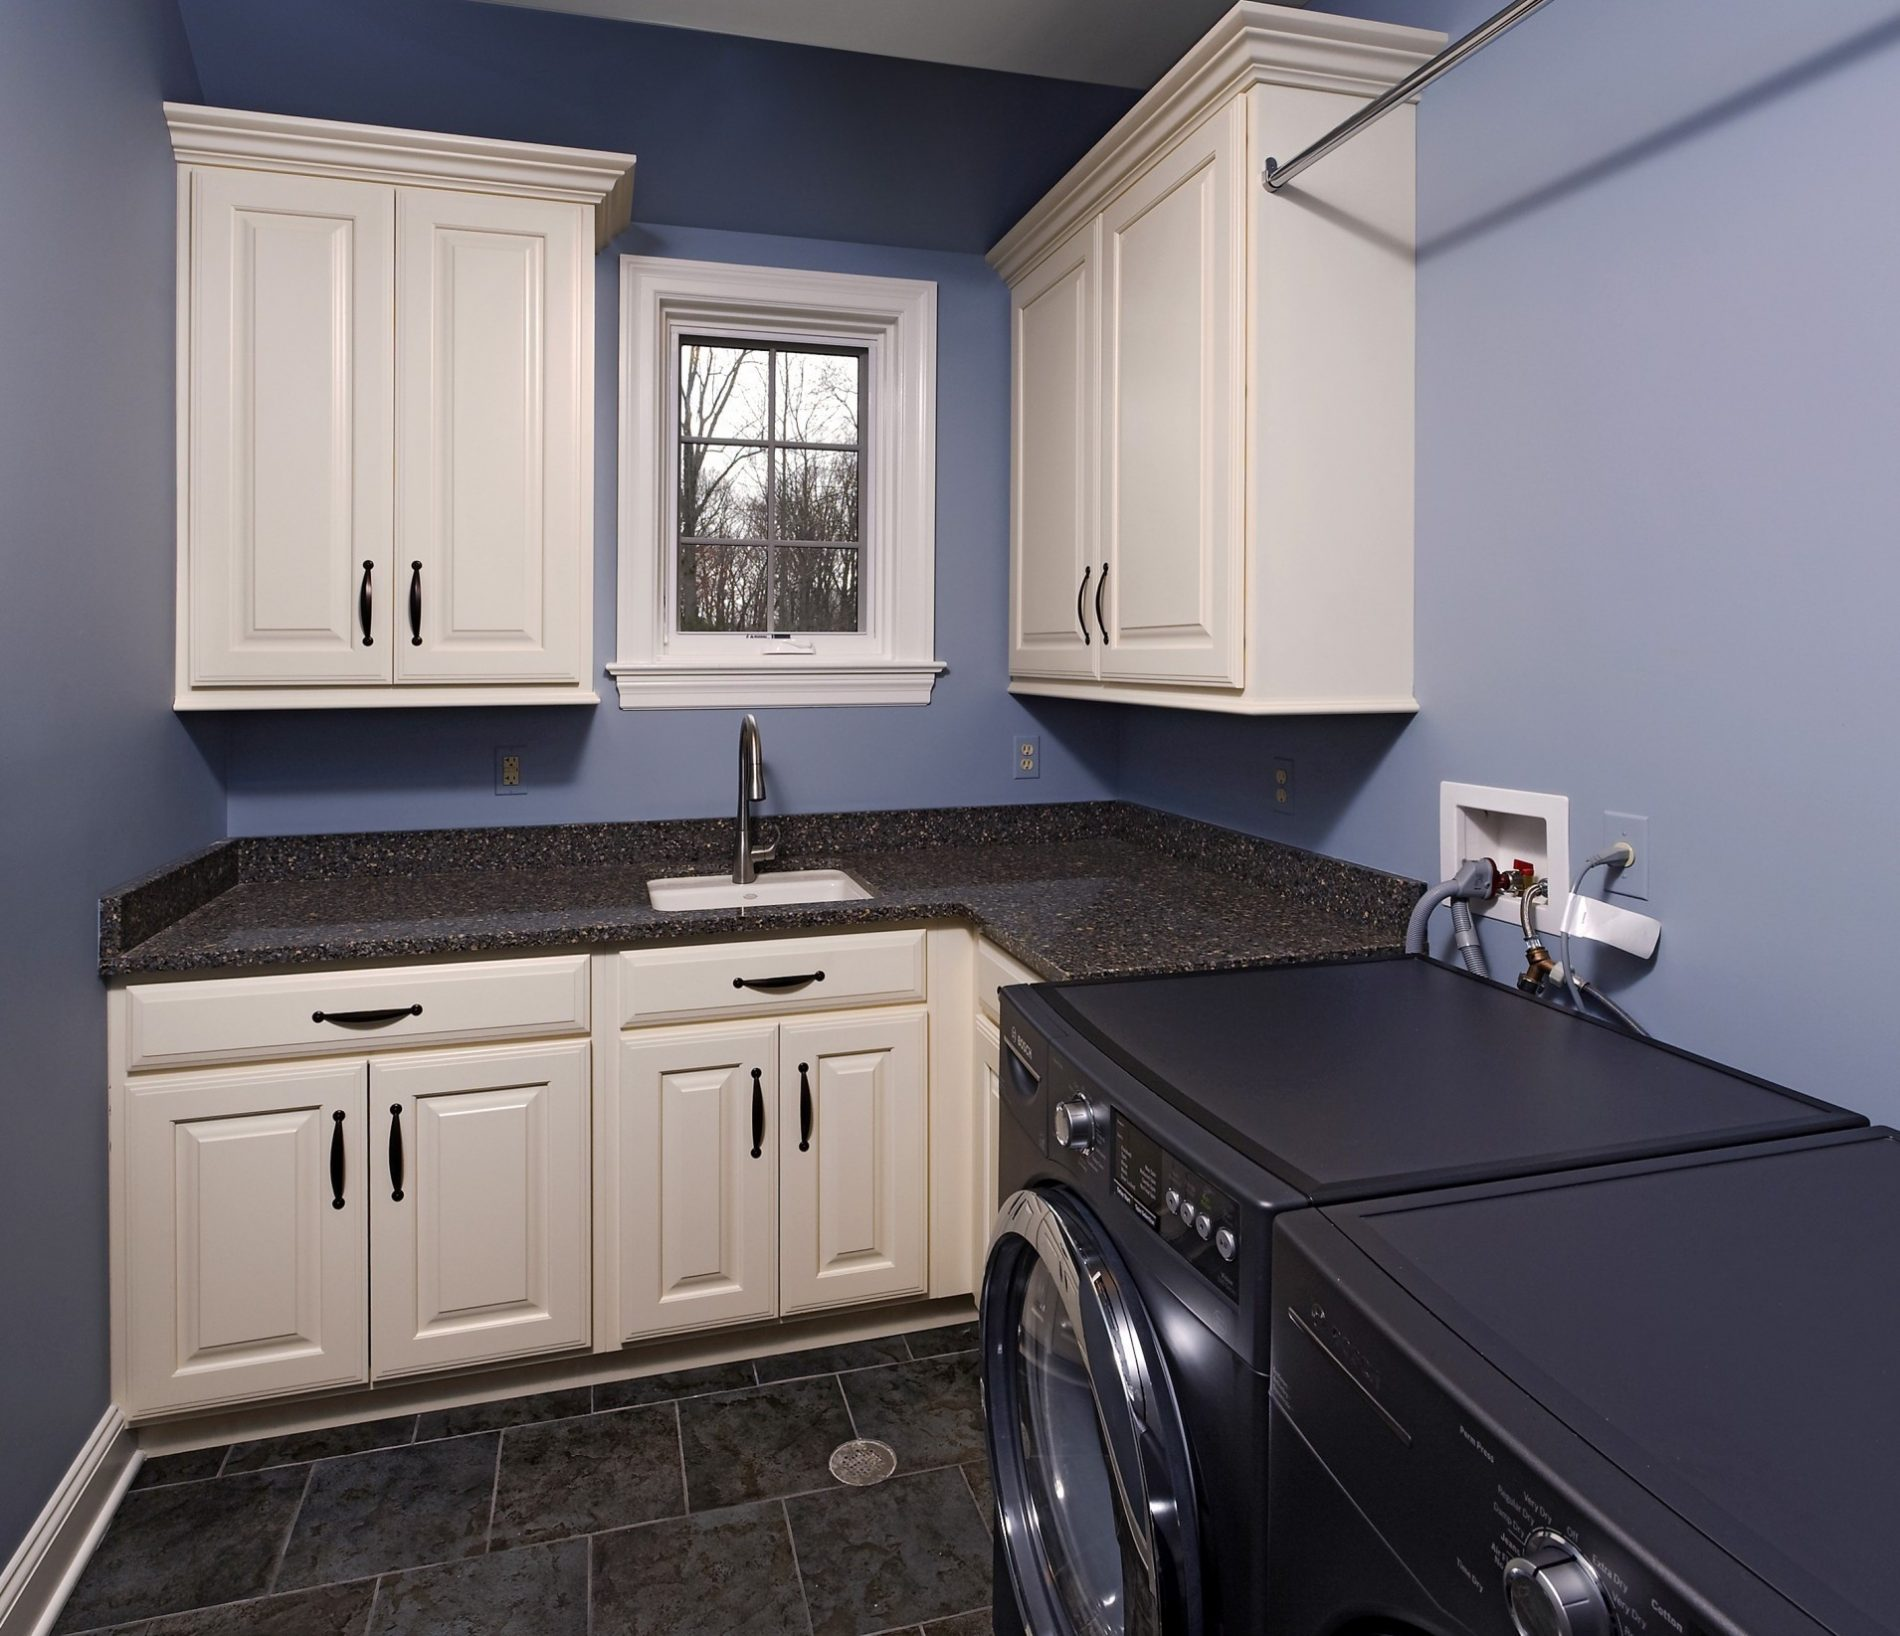 New Kitchen Cabinets | Laundry, Bath, Home Office ... on Laundry Room Cabinets  id=83369